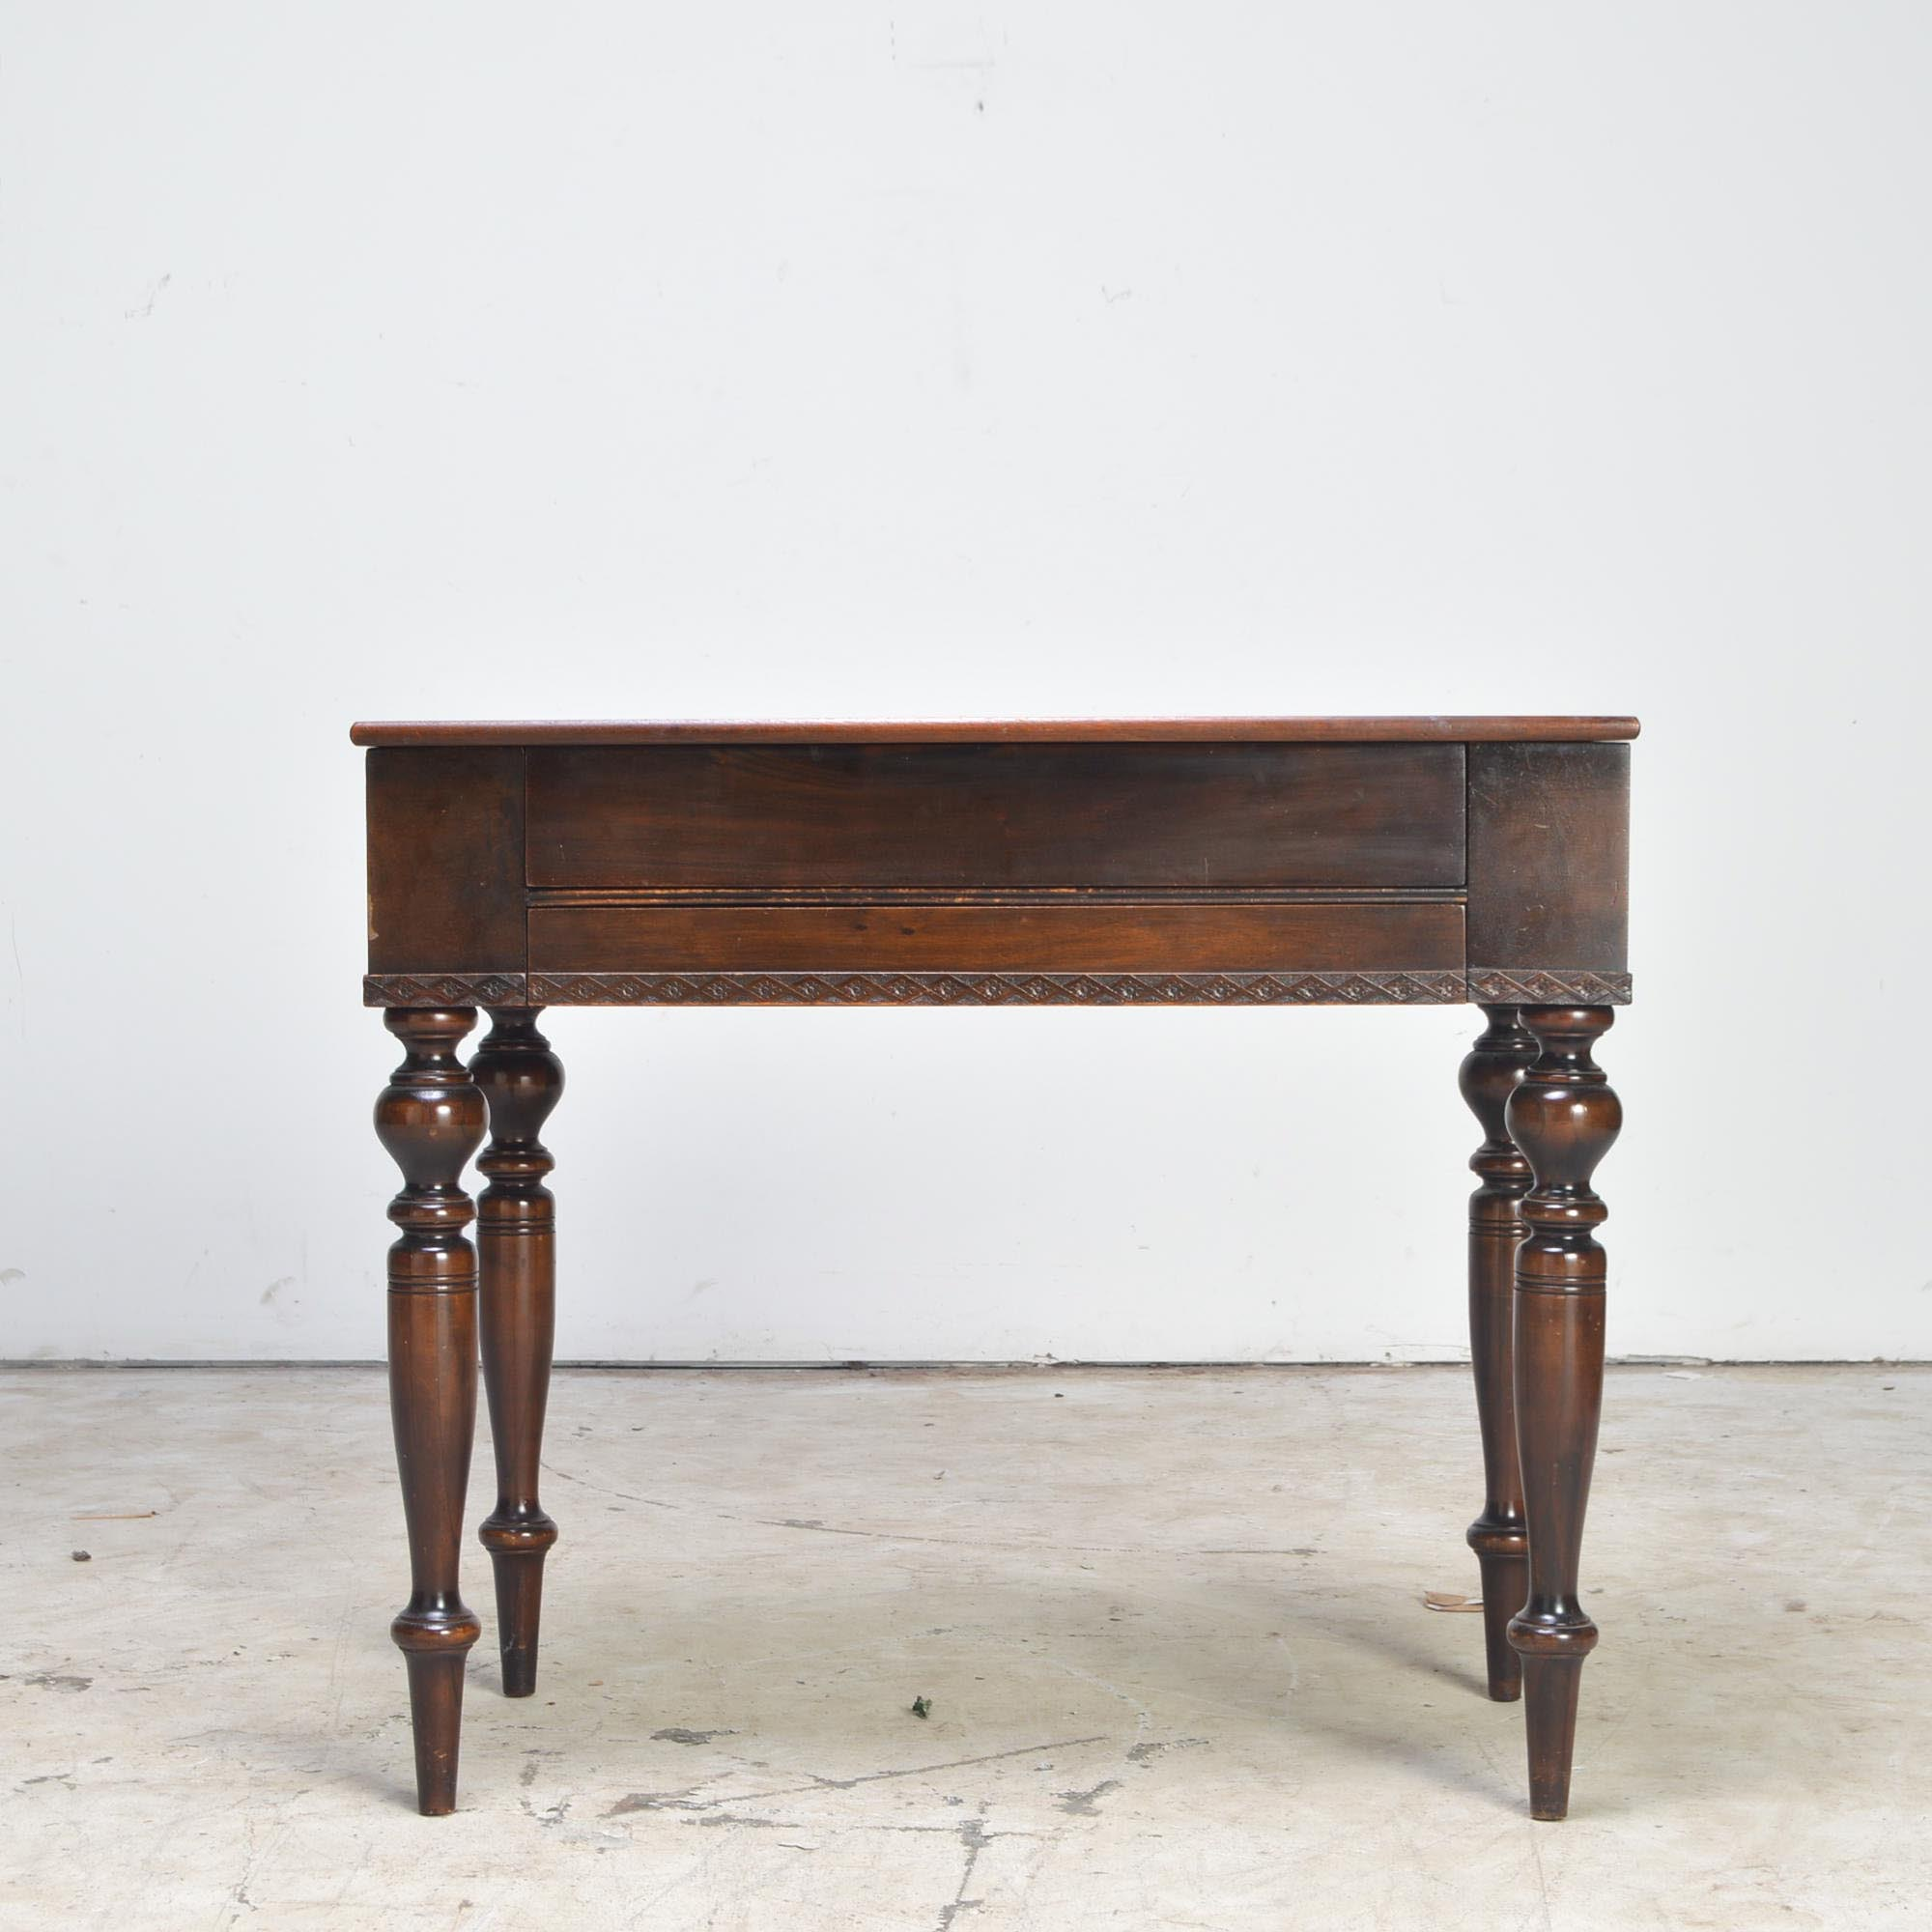 Antique Mahogany Spinet Desk By Bayview Furniture Co.